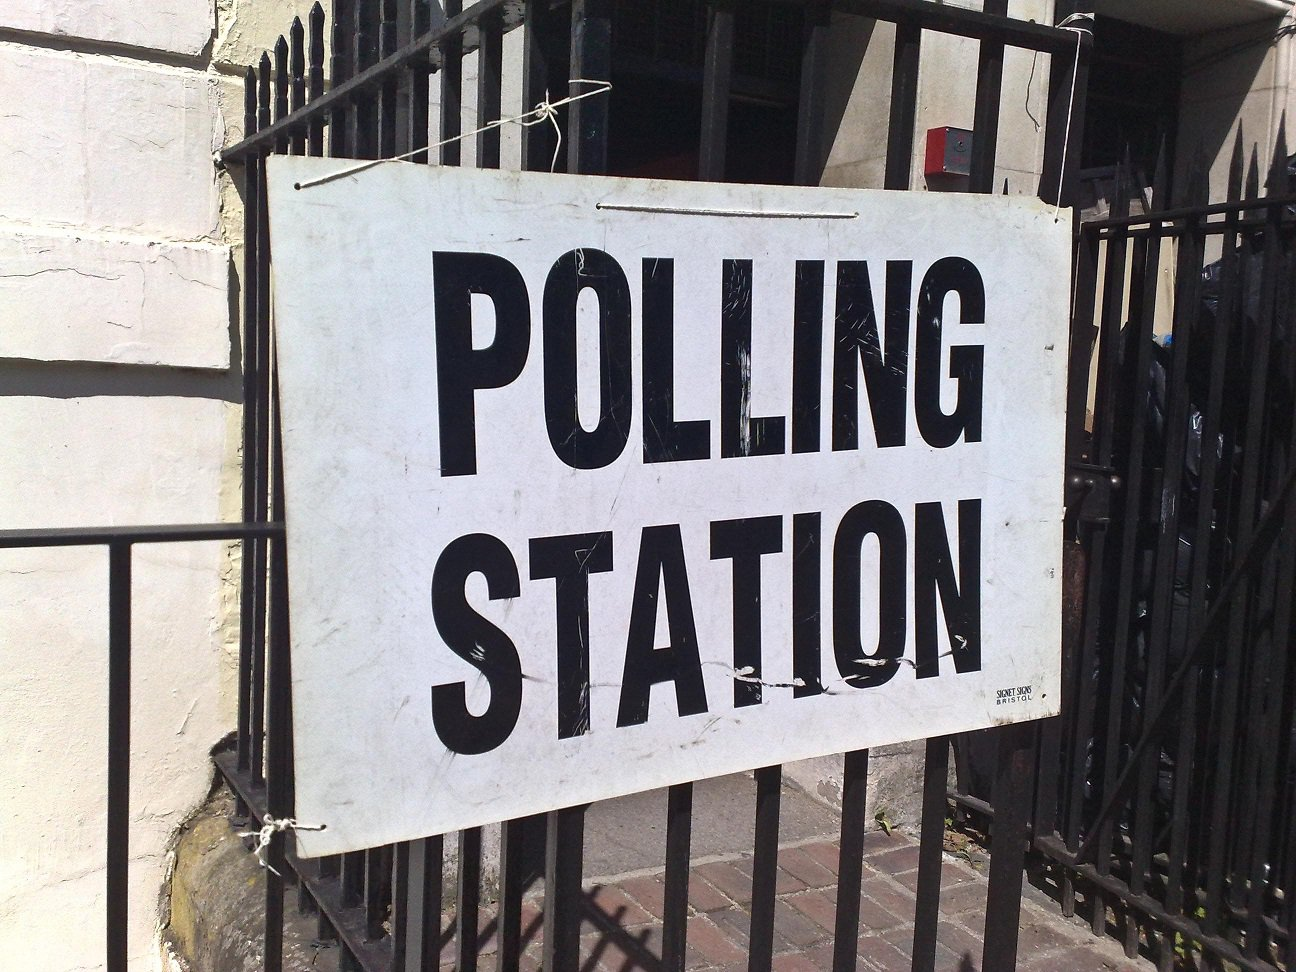 Polling_station_6_may_2010.jpg